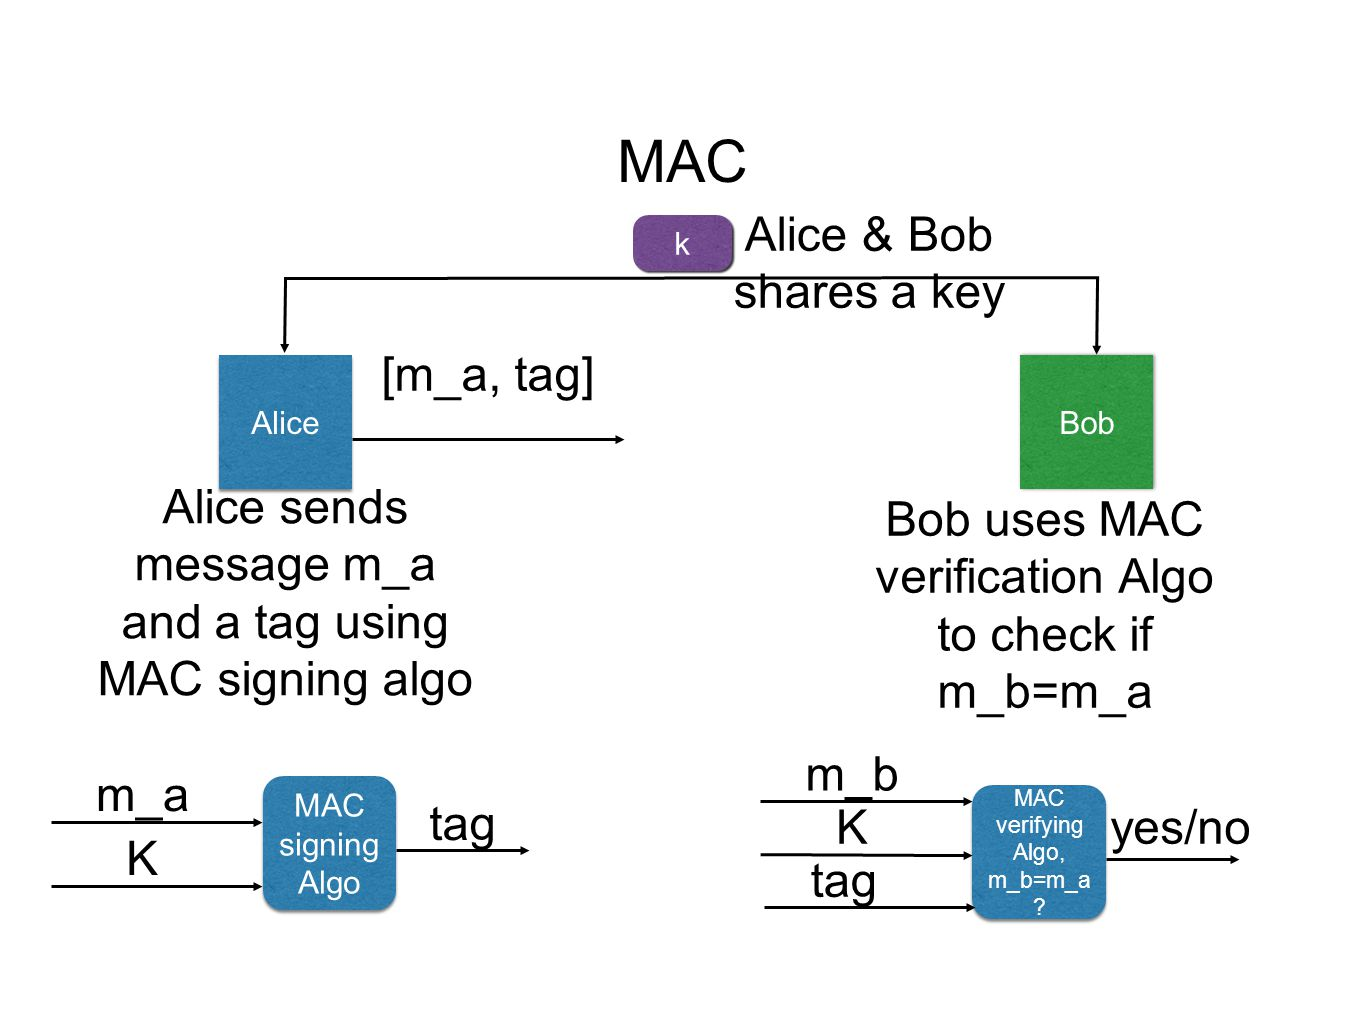 MAC Alice Bob Alice sends message m_a and a tag using MAC signing algo [m_a, tag] Bob uses MAC verification Algo to check if m_b=m_a MAC signing Algo m_a K tag MAC verifying Algo, m_b=m_a .